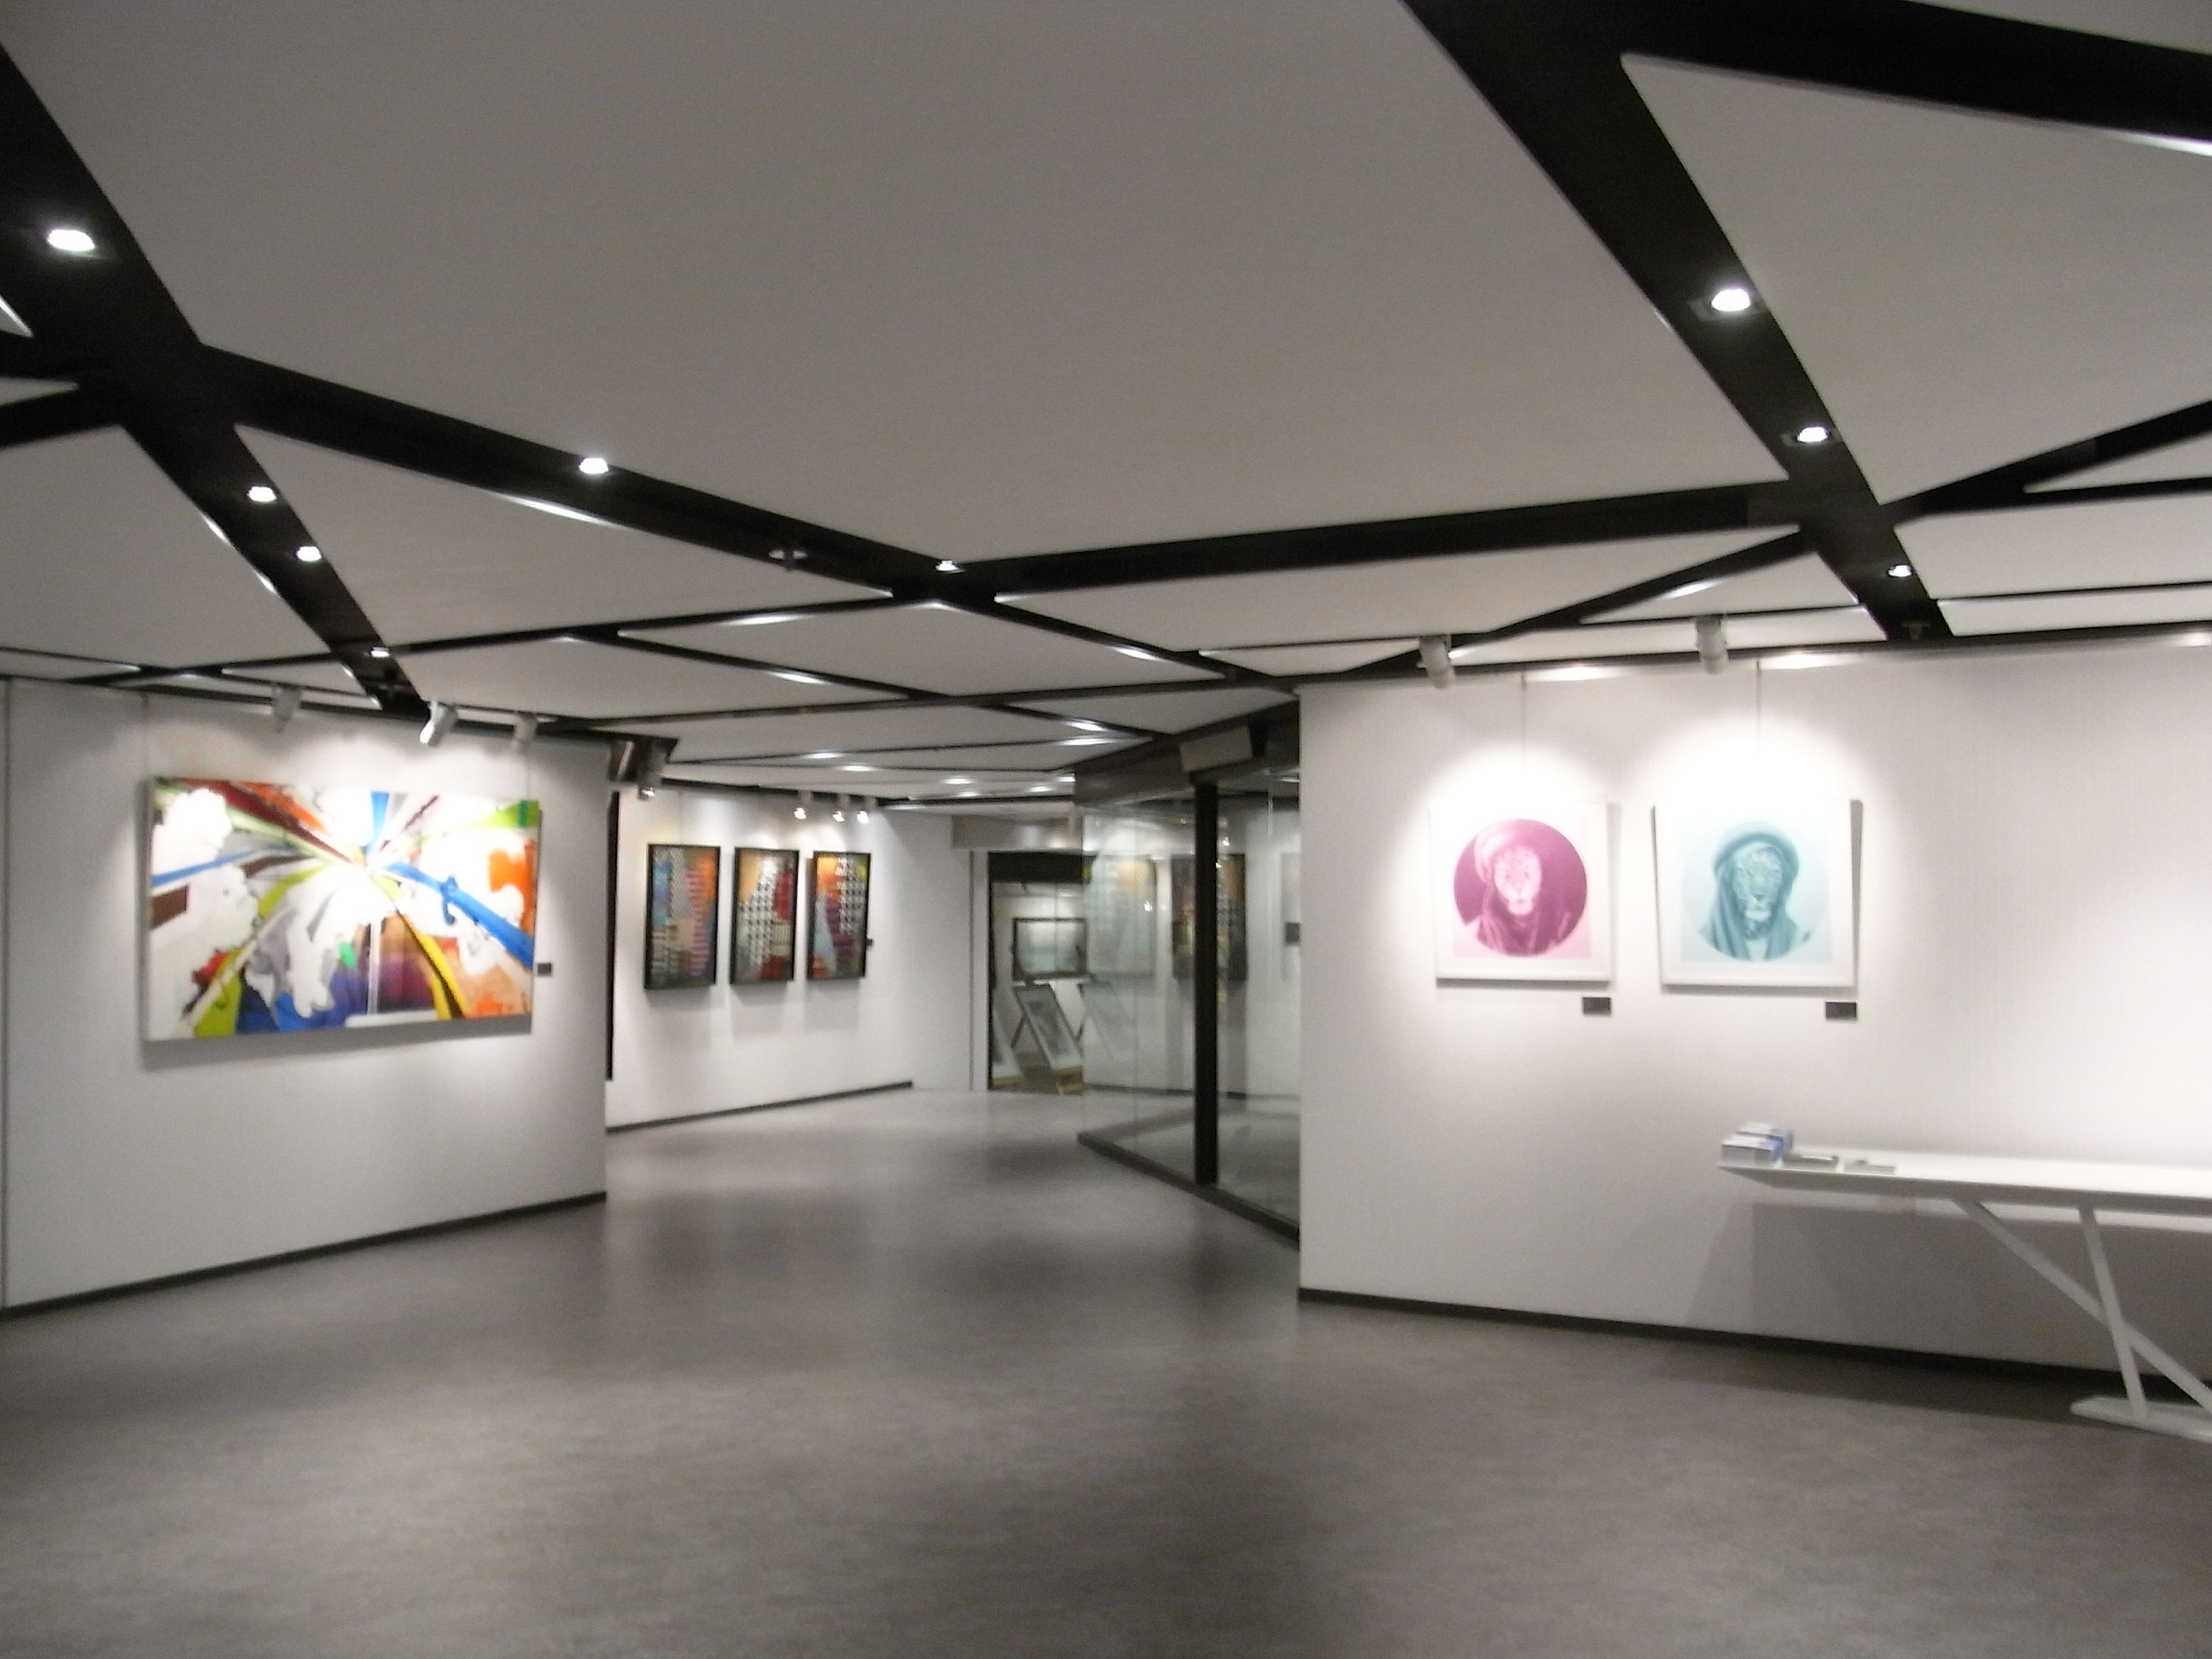 Charming File:HK Wan Chai North 灣仔北 Art One @ Convention Plaza Art Gallery Interior